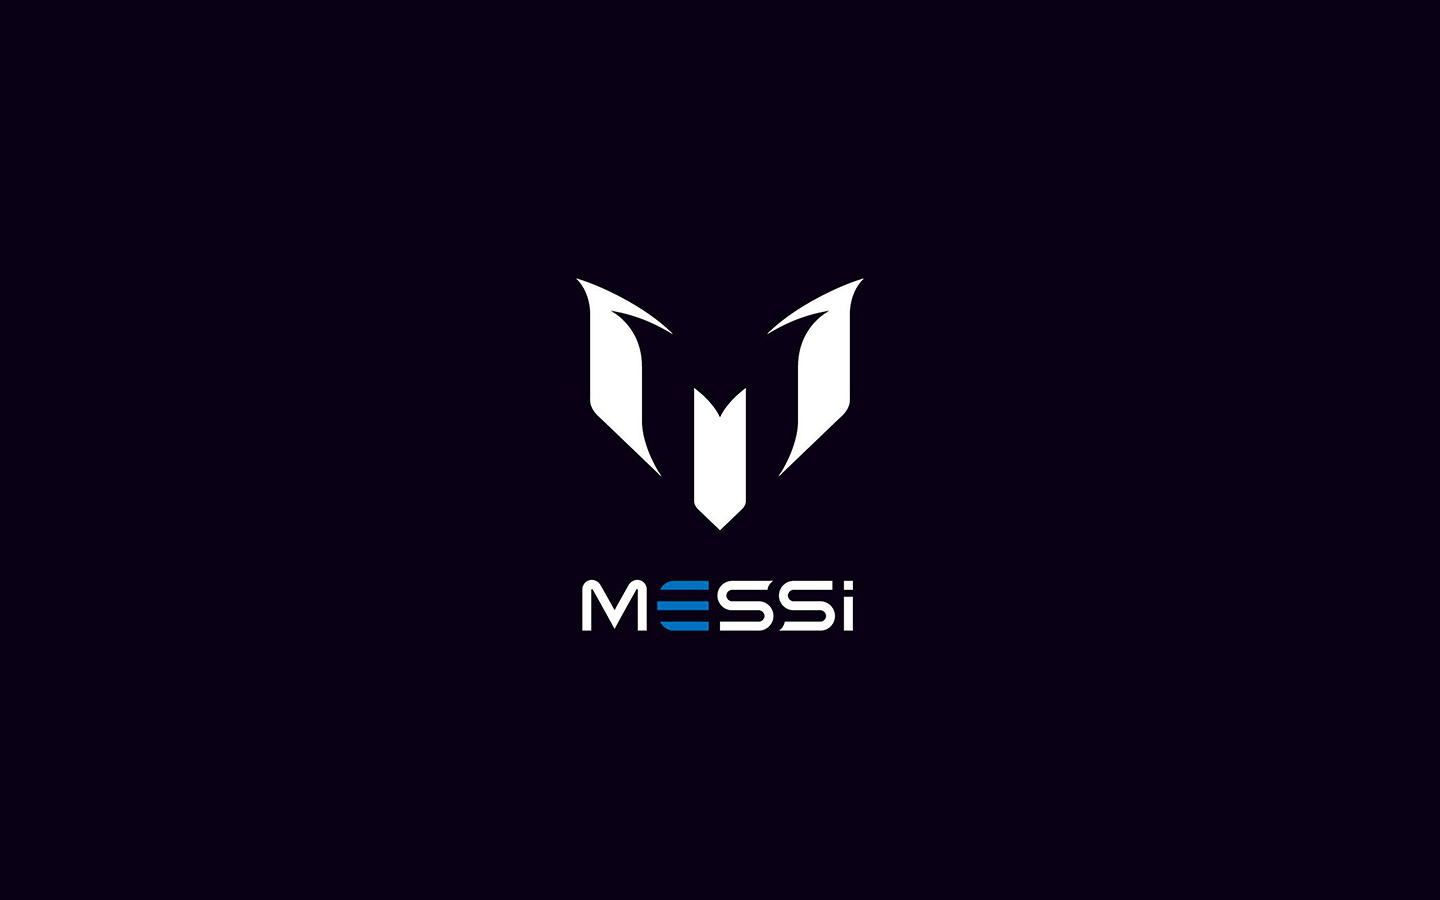 2048x2048 Lionel Messi Ipad Air Hd 4k Wallpapers Images: Aq07-messi-logo-art-minimal-dark-wallpaper